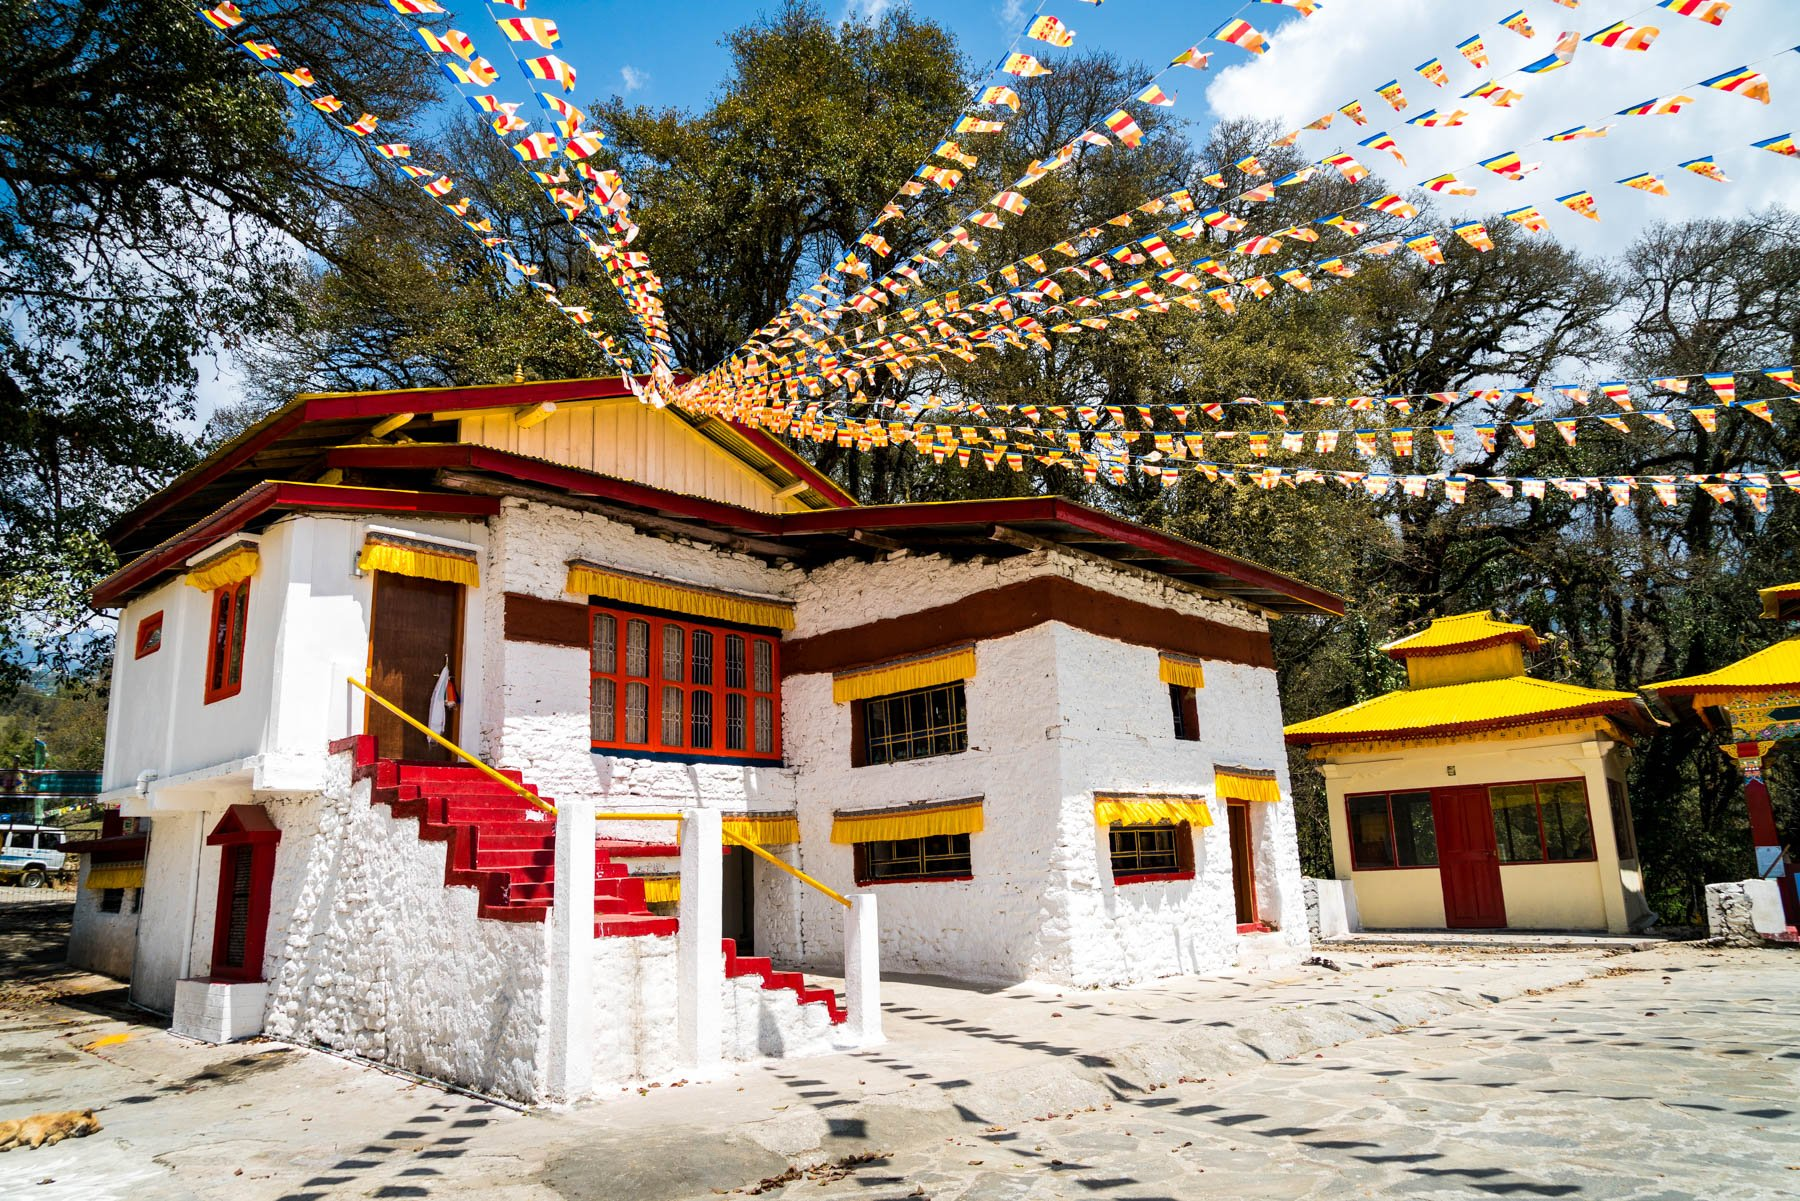 Backpacking Arunachal Pradesh travel guide - Urgelling Gompa monastery in Tawang, birthplace of the 6th Dalai Lama - Lost With Purpose